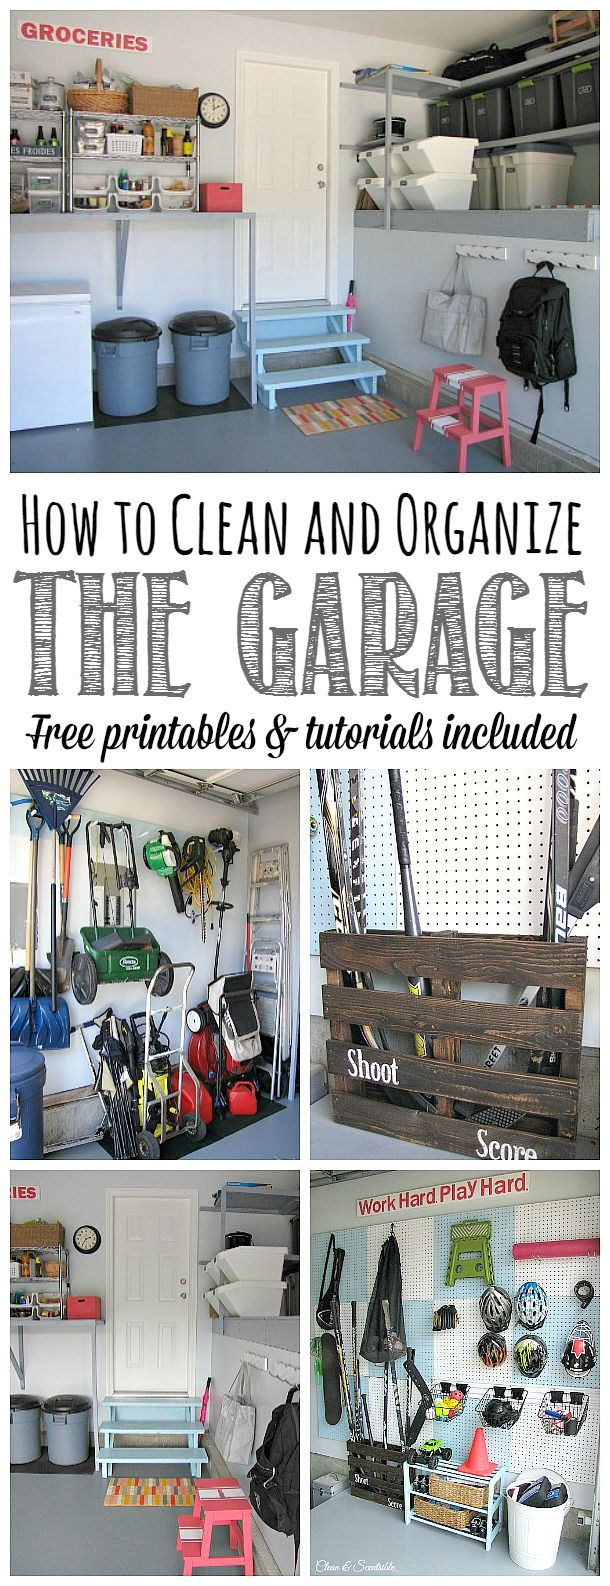 Organize, deep clean, and declutter one room in your house per month. By the end of the year you will have an organized home and an established plan to keep it that way! A monthly to do list and free printables are included.